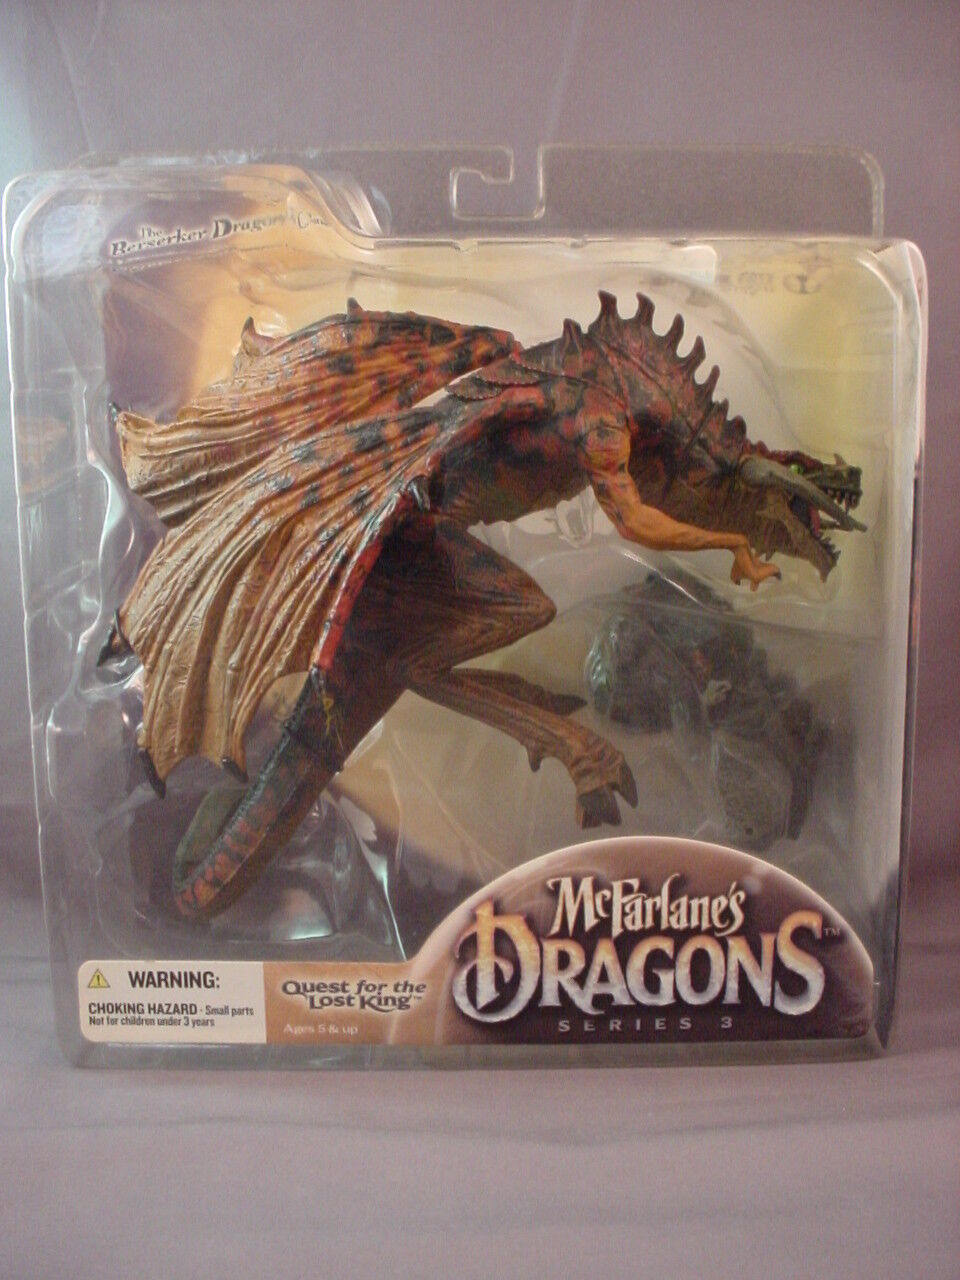 McFARLANE'S DRAGONS S3 QUEST FOR THE LOST KING BERSERKER DRAGON CLAN FIG SEALED